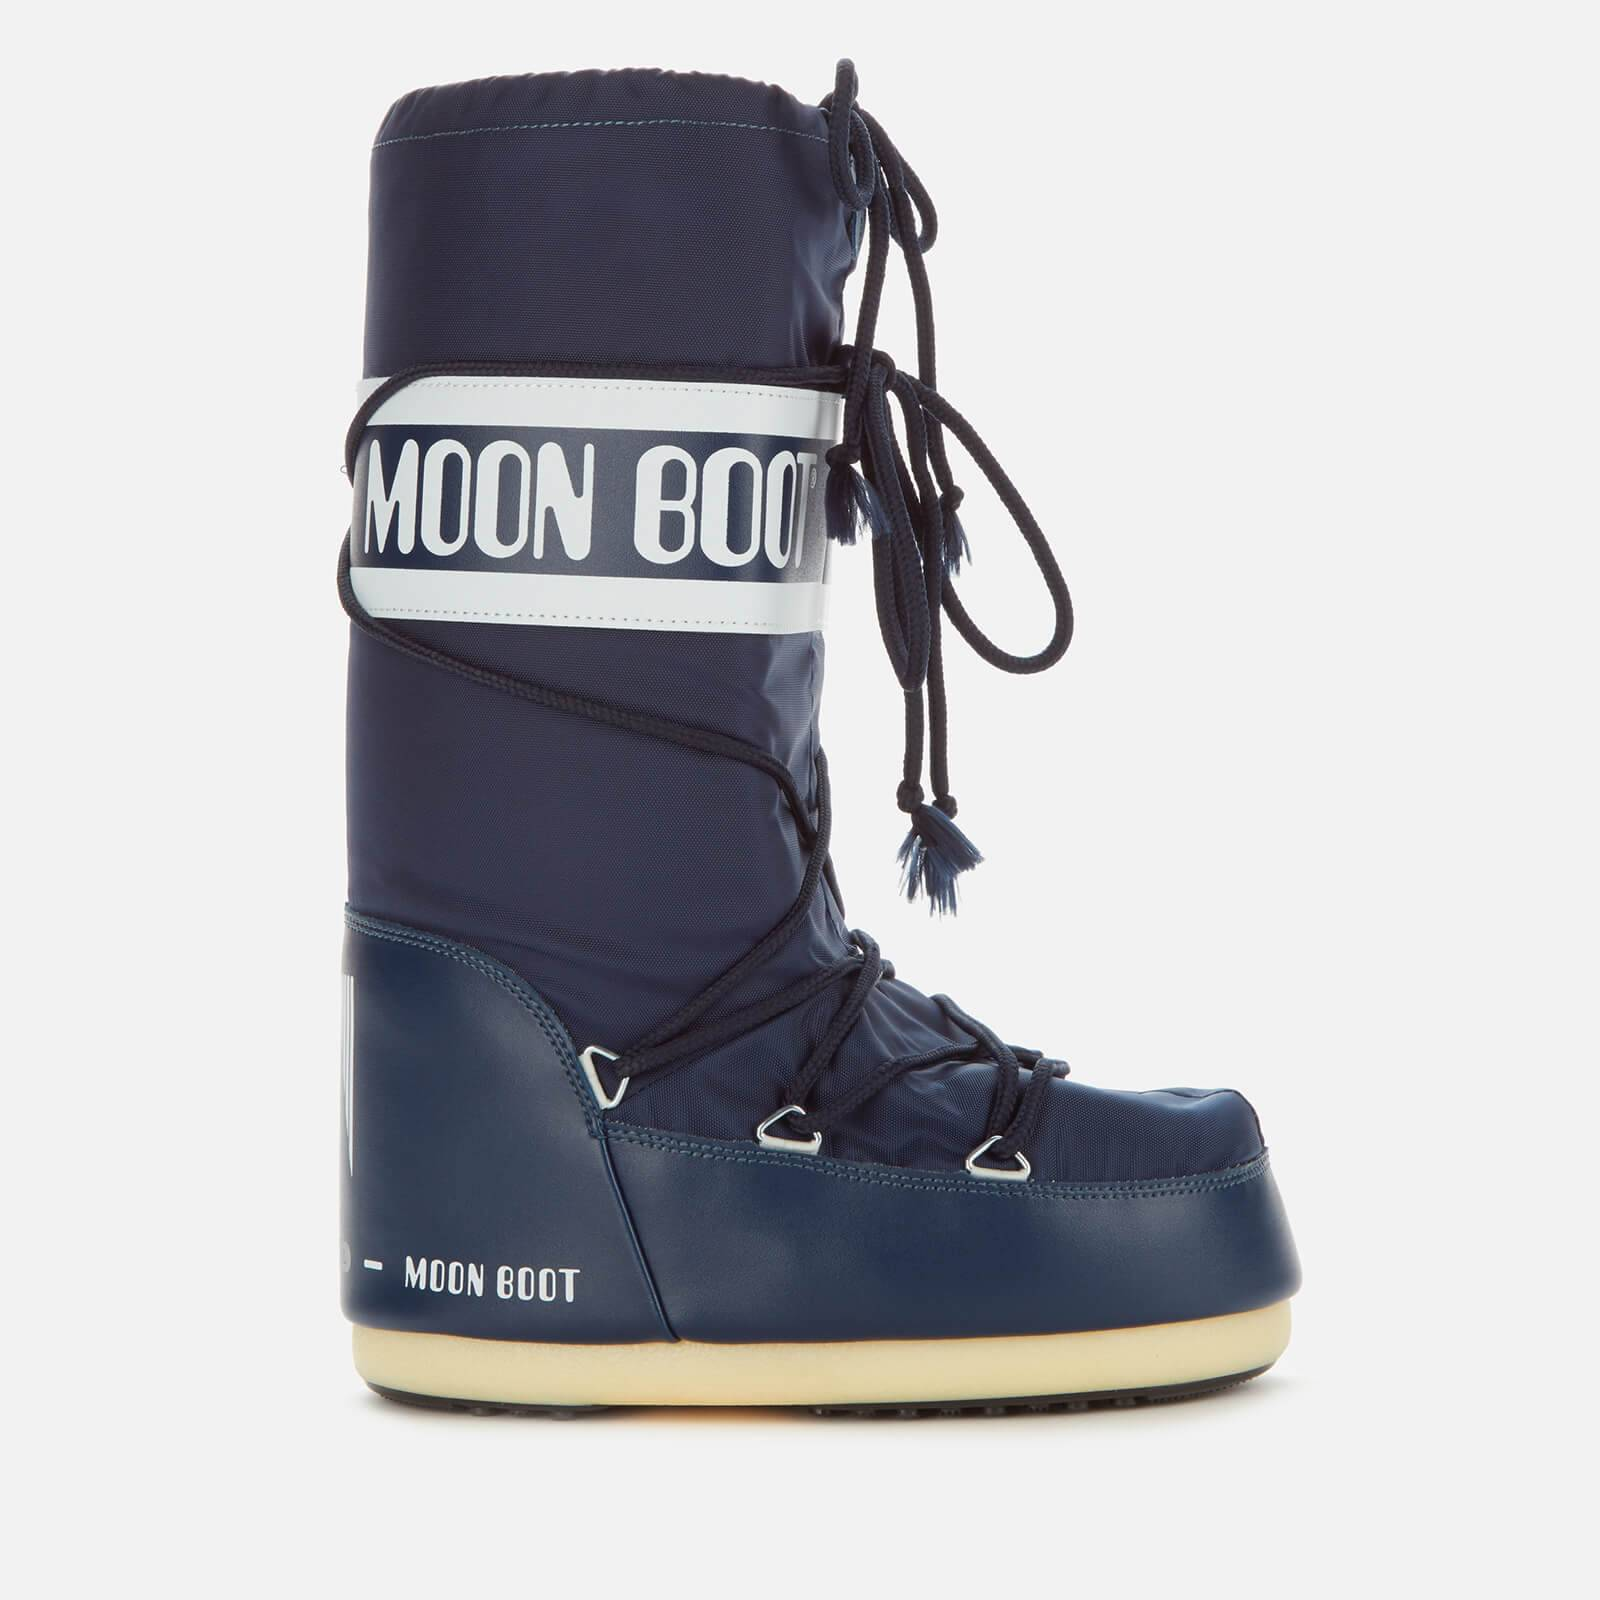 Moon Boot Women's Nylon Boots - Blue - EU 35-38 - Blue